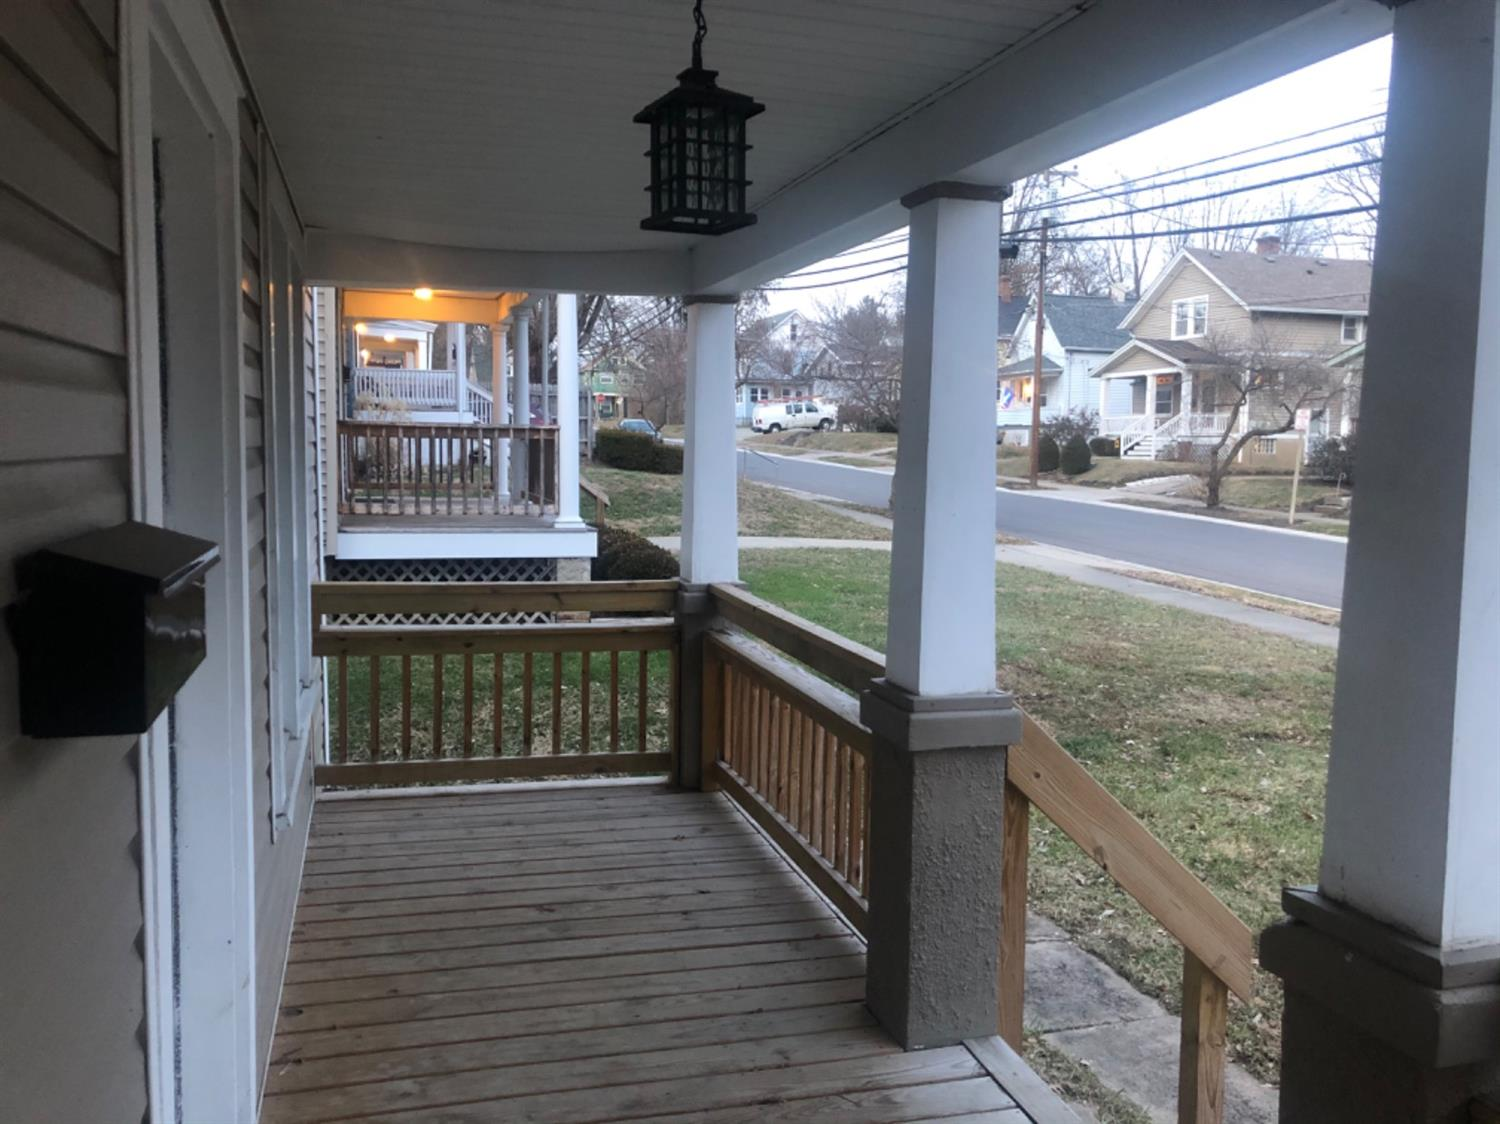 Photo 2 for 4127 Watterson St Madisonville, OH 45227